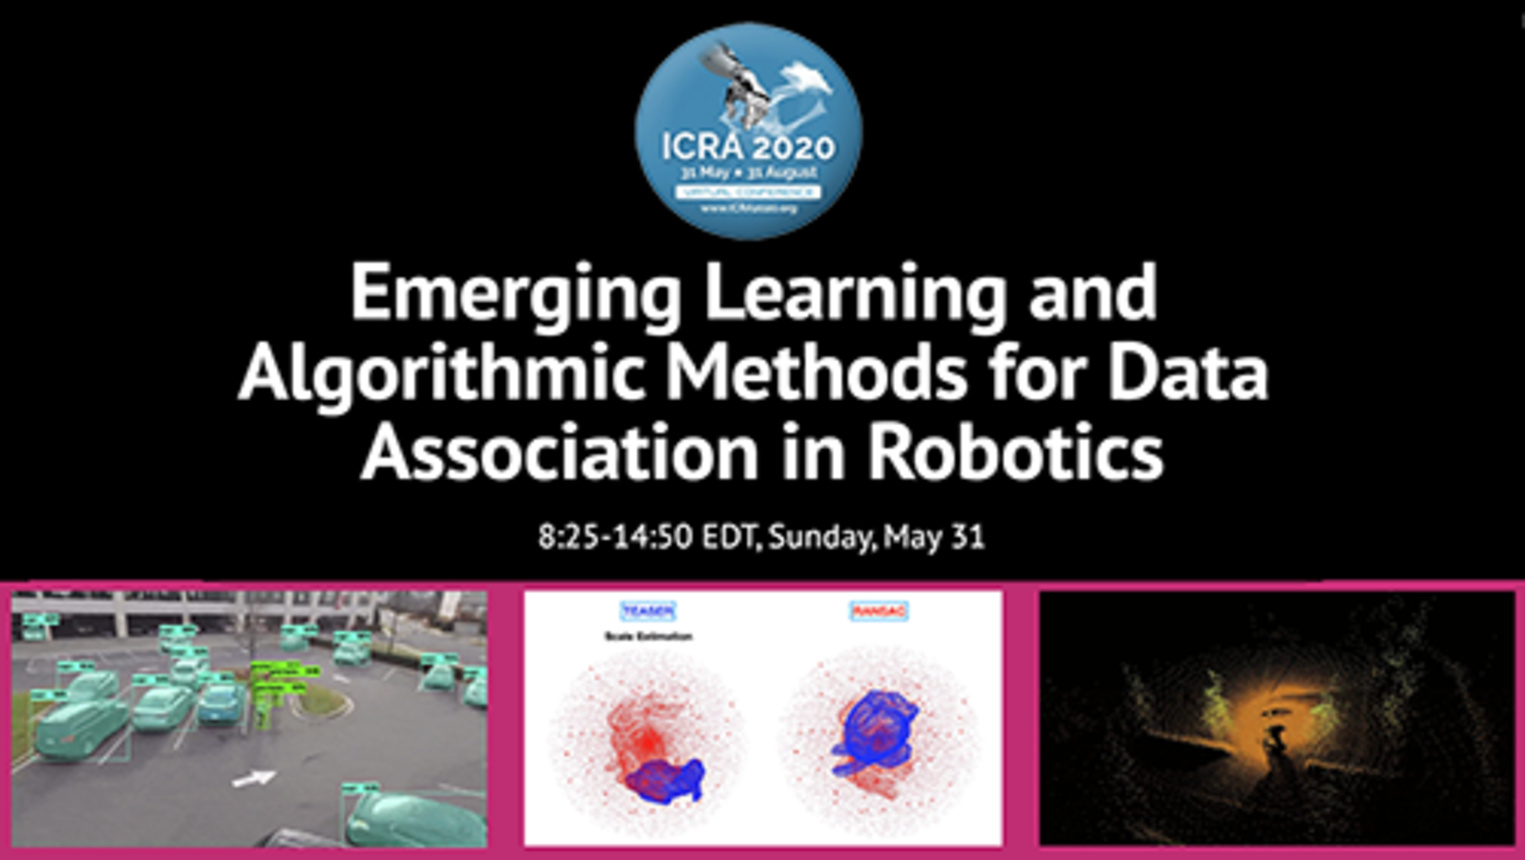 Emerging Learning and Algorithmic Methods for Data Association in Robotics - ICRA 2020